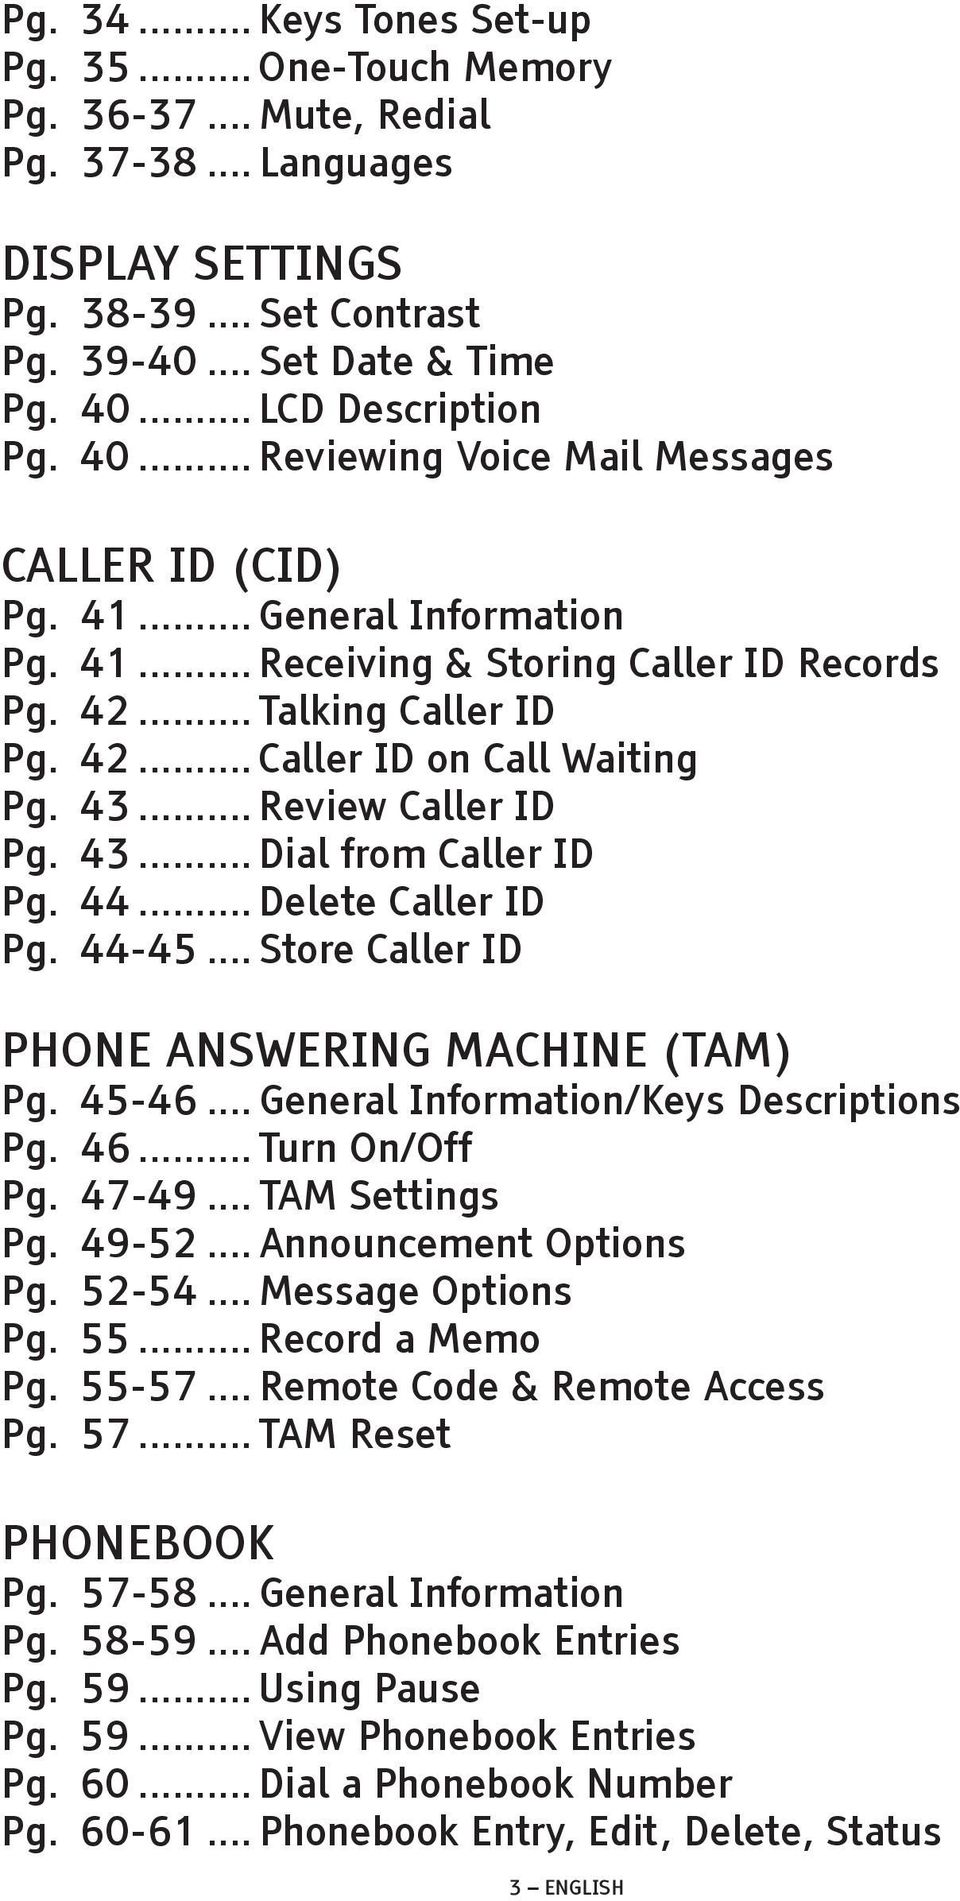 43... Review Caller ID Pg. 43... Dial from Caller ID Pg. 44... Delete Caller ID Pg. 44-45... Store Caller ID PHONE ANSWERING MACHINE (TAM) Pg. 45-46... General Information/Keys Descriptions Pg. 46.